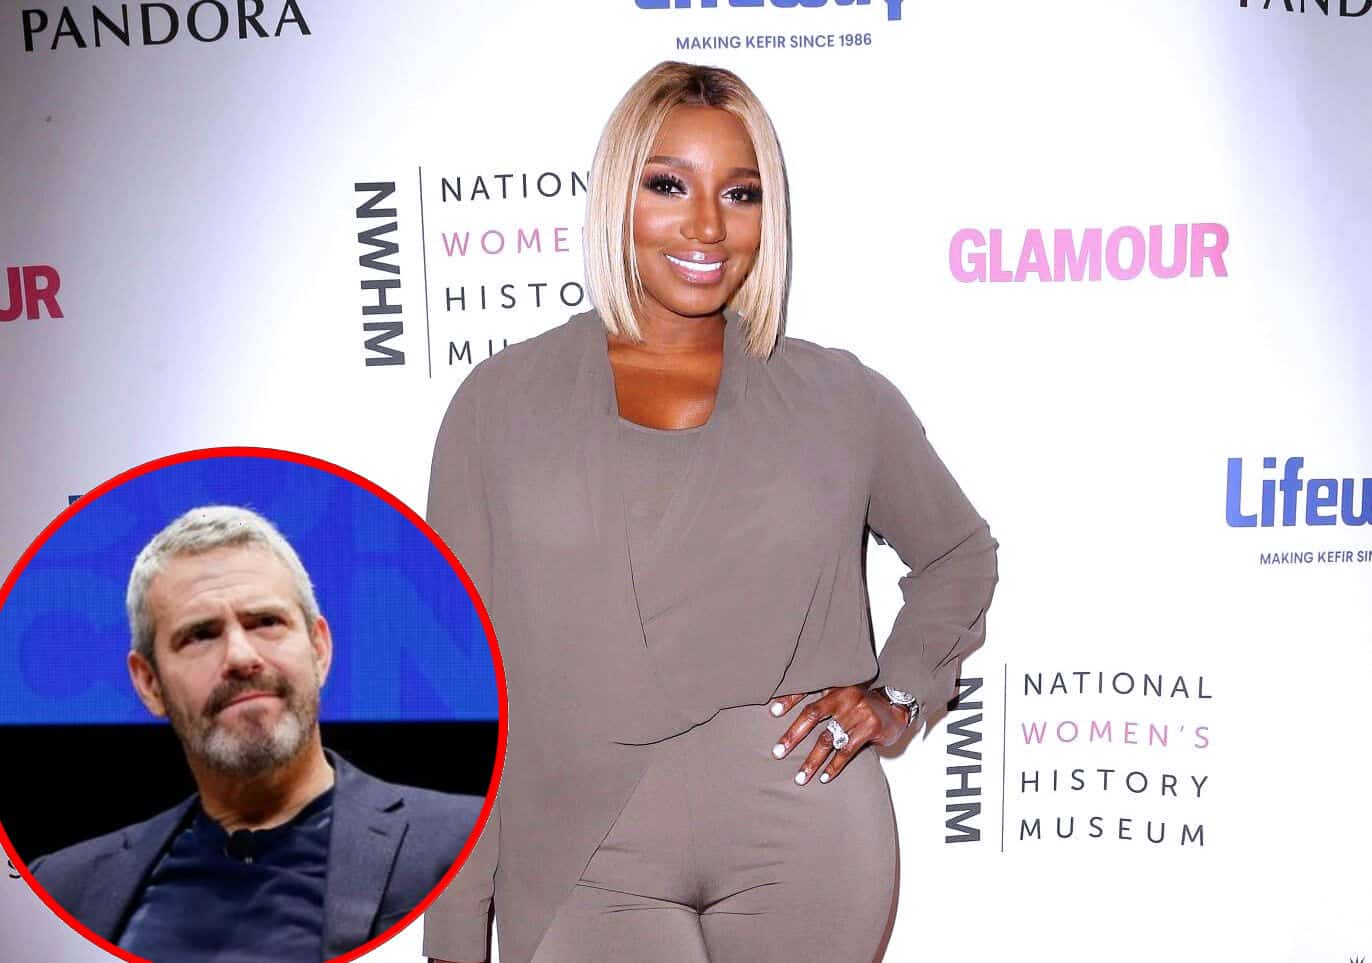 Is RHOA Star Nene Leakes Planning to Sue Bravo? Her Lawyer Speaks Out Amid Frustrations Over Season 12 Portrayal and Feud With Andy Cohen